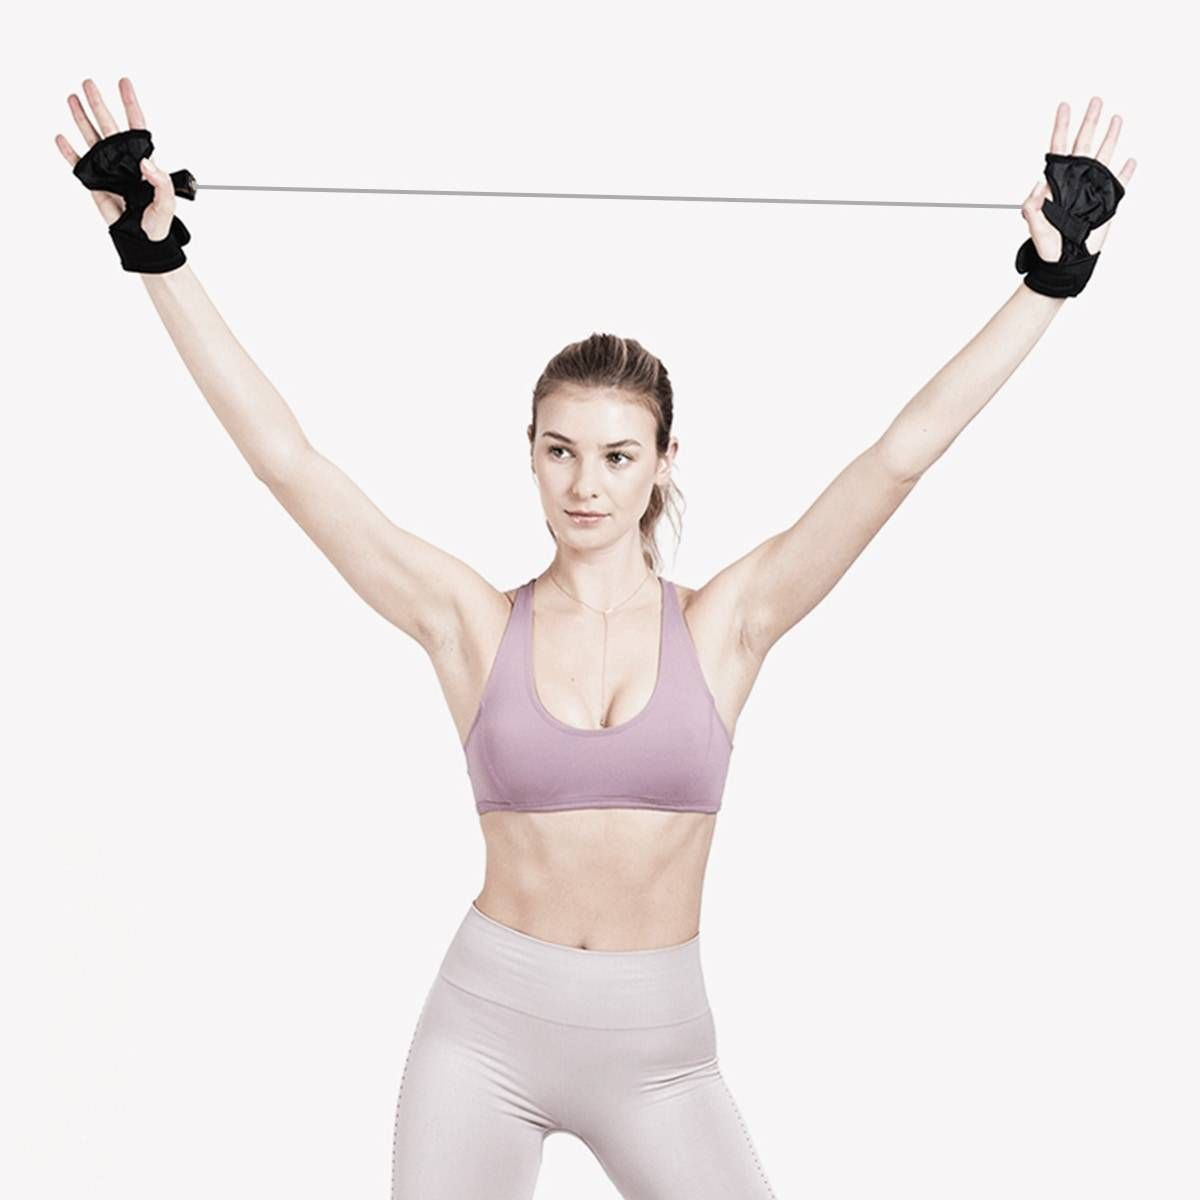 Home Workout Equipment - P.volve Arm P.Band | P.volve